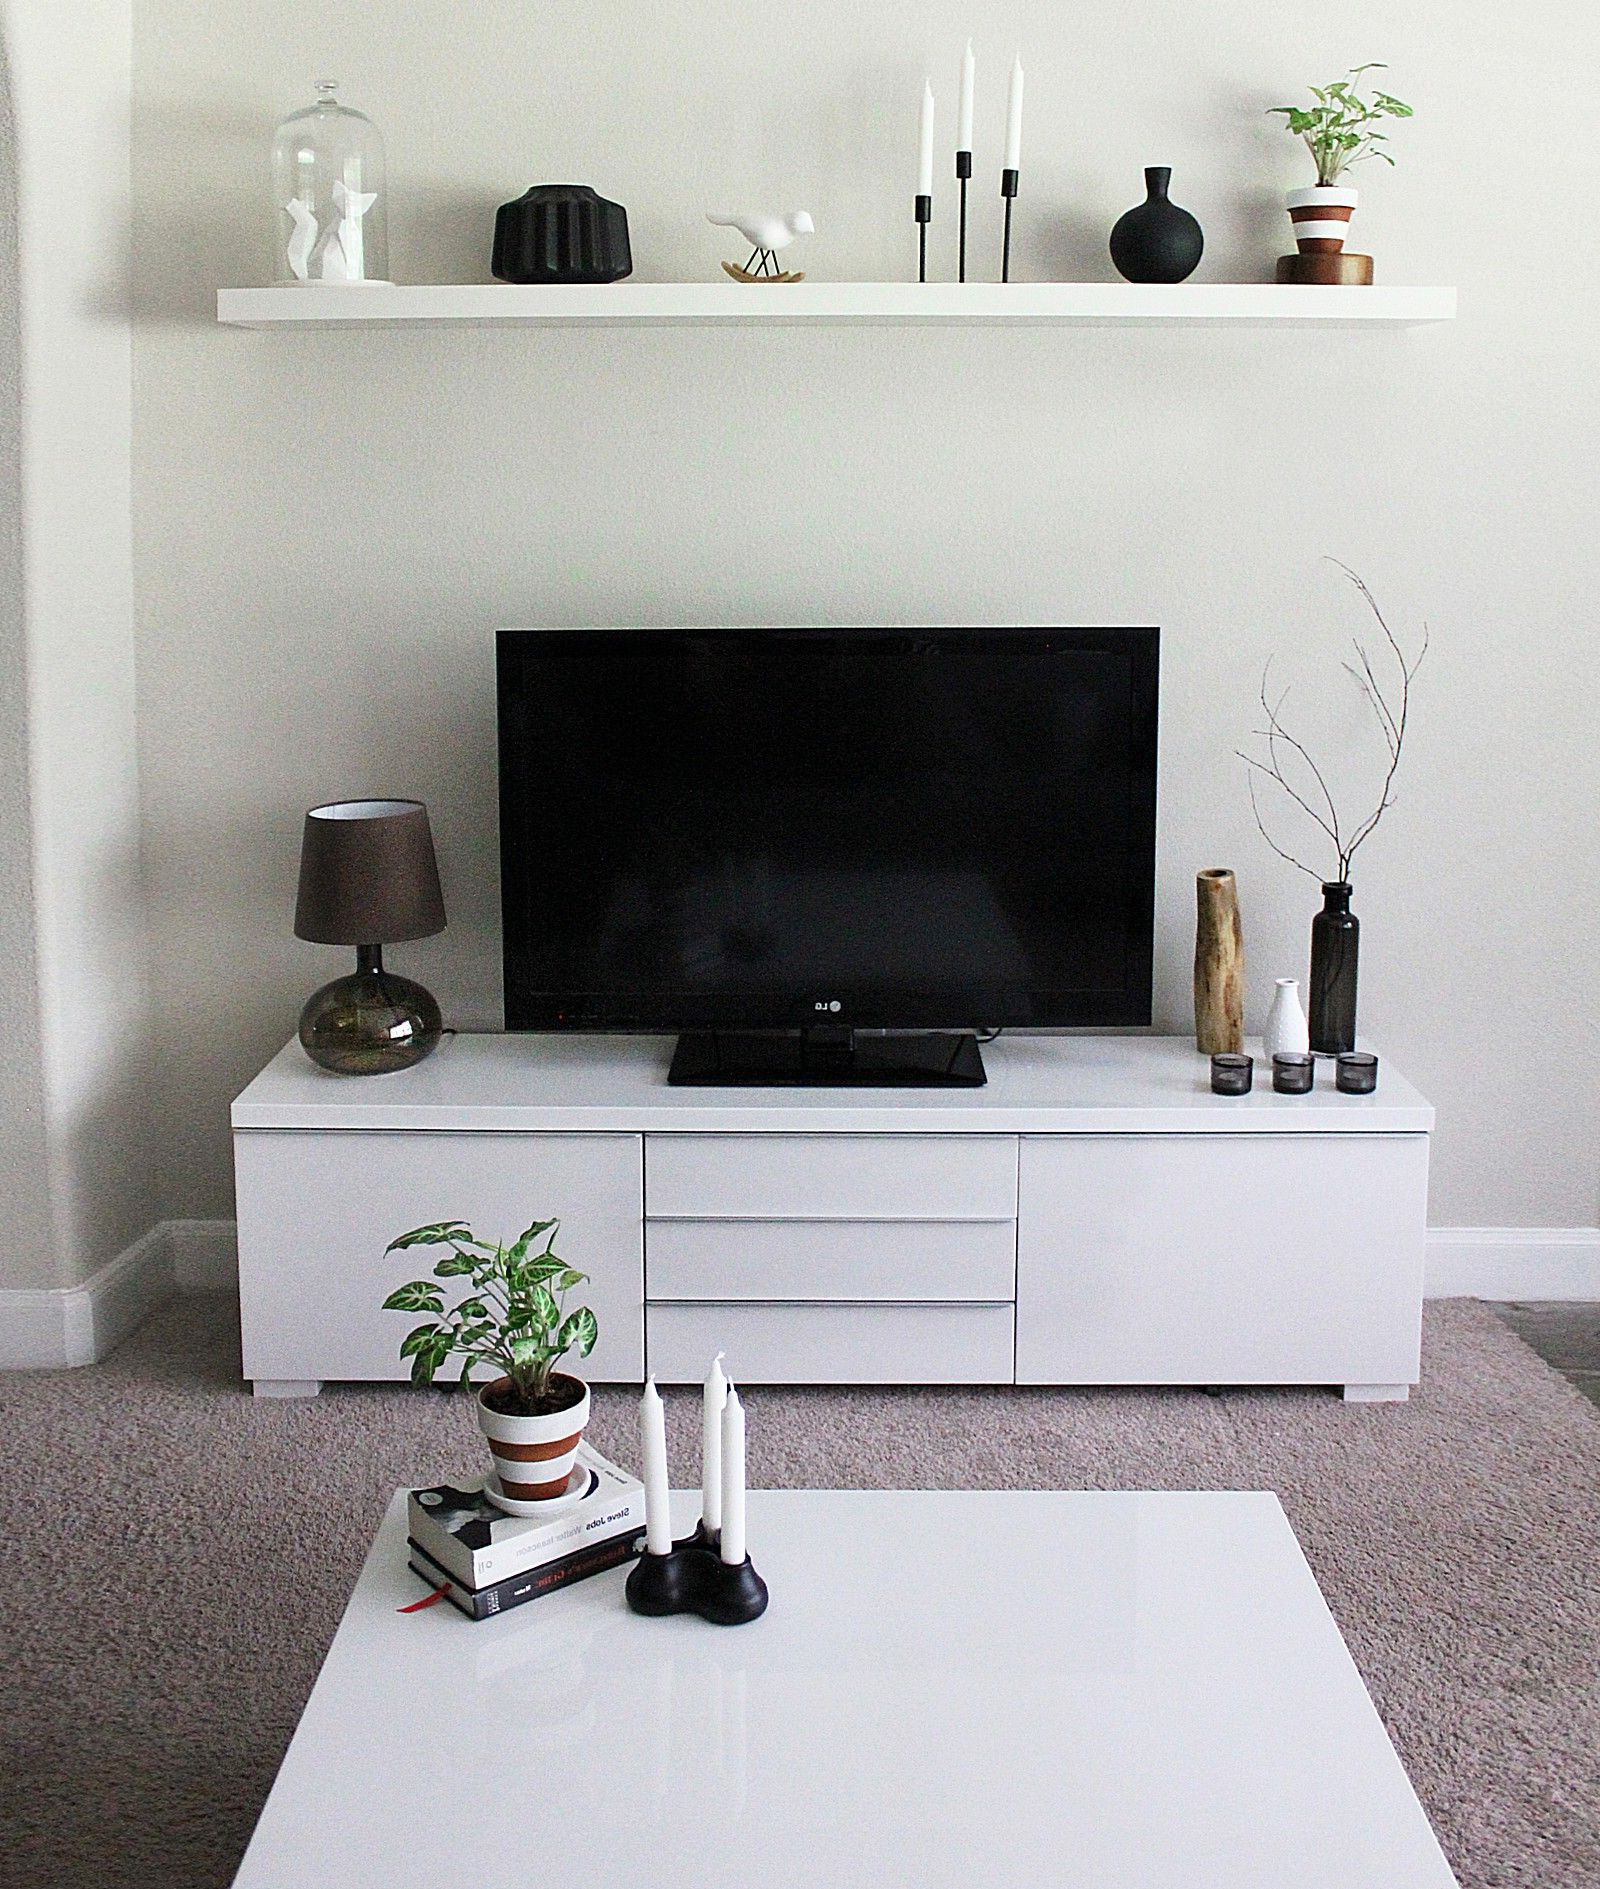 Current Minimalist Tv Stand And Cabinet Ikea Besta (Gallery 9 of 20)